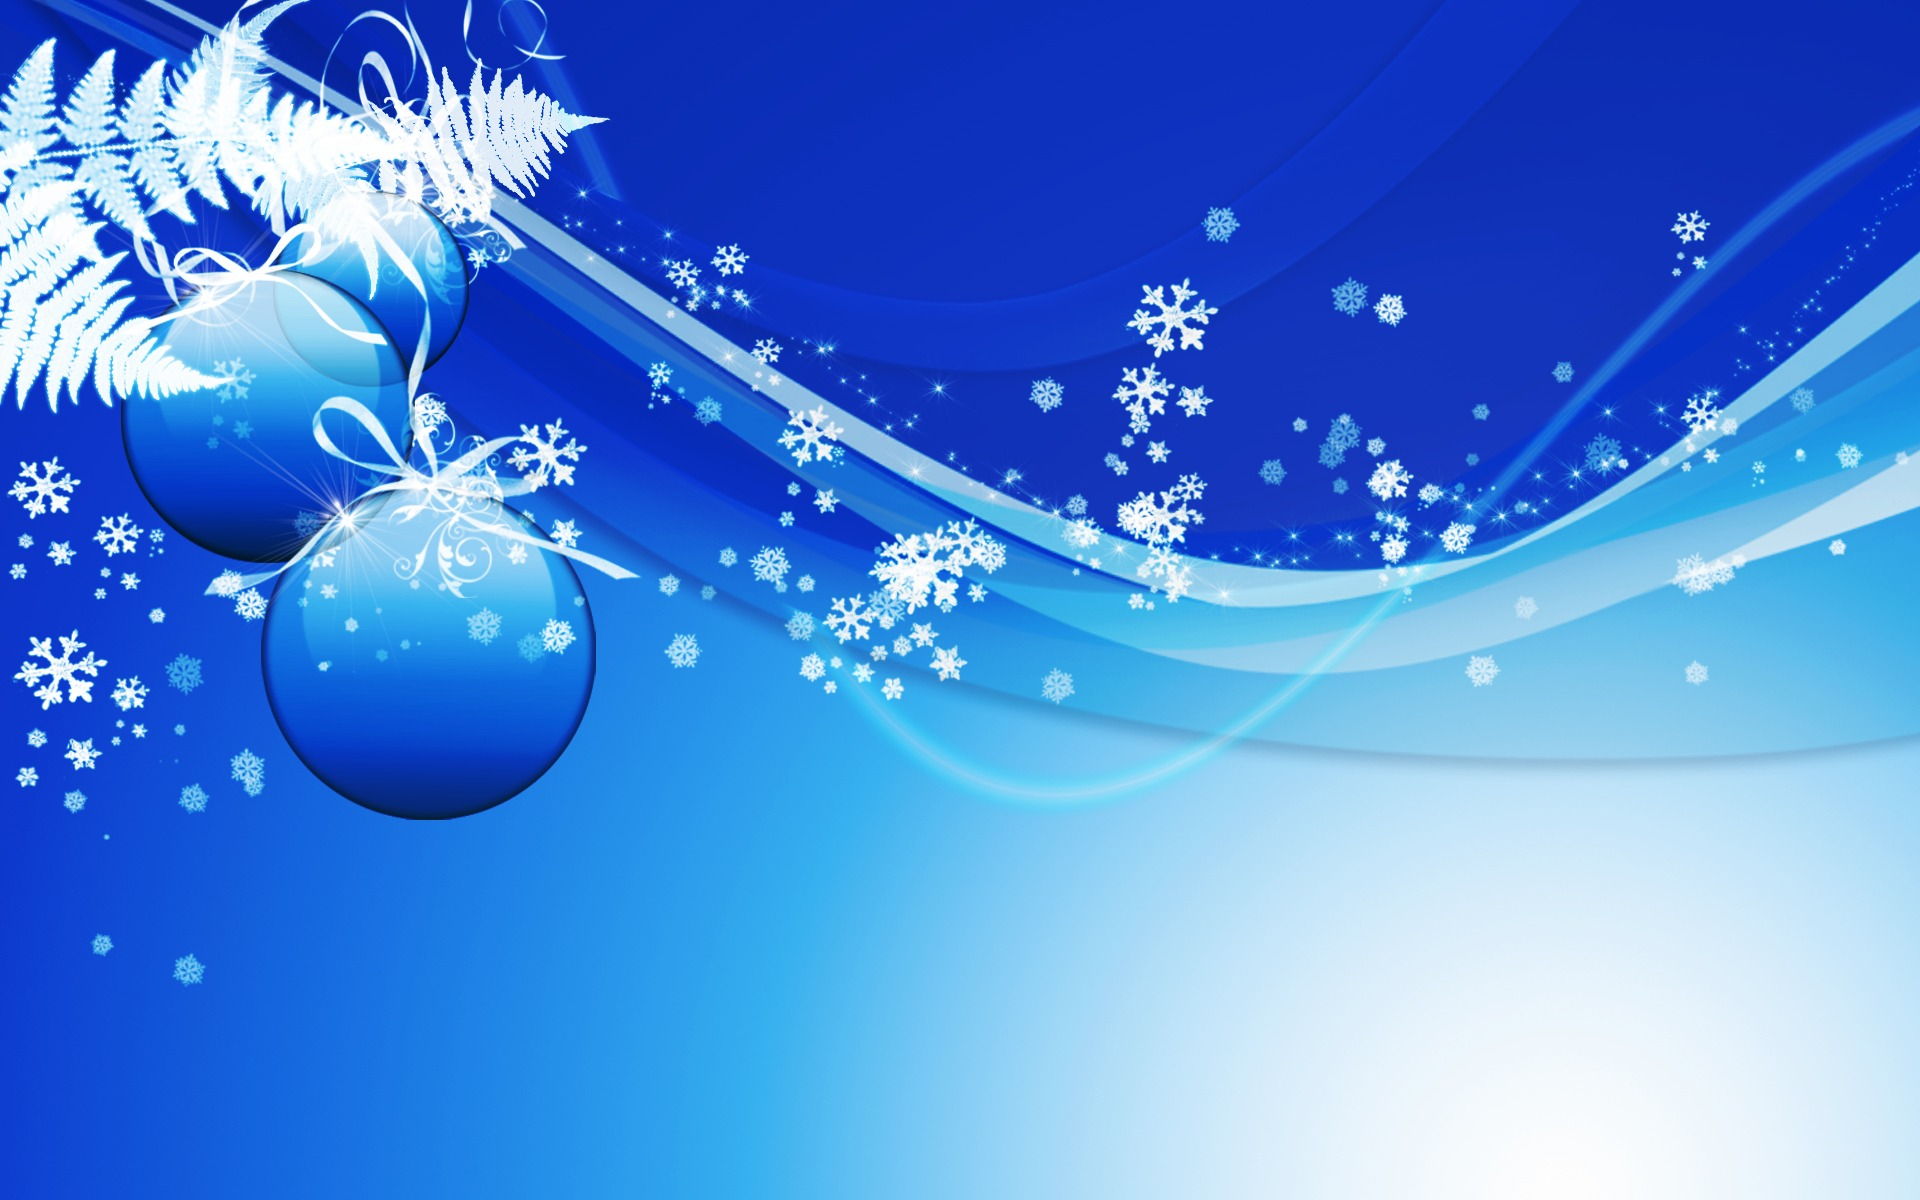 Christmas Wallpapers Christmas Wallpapers for Desktop 1920x1200